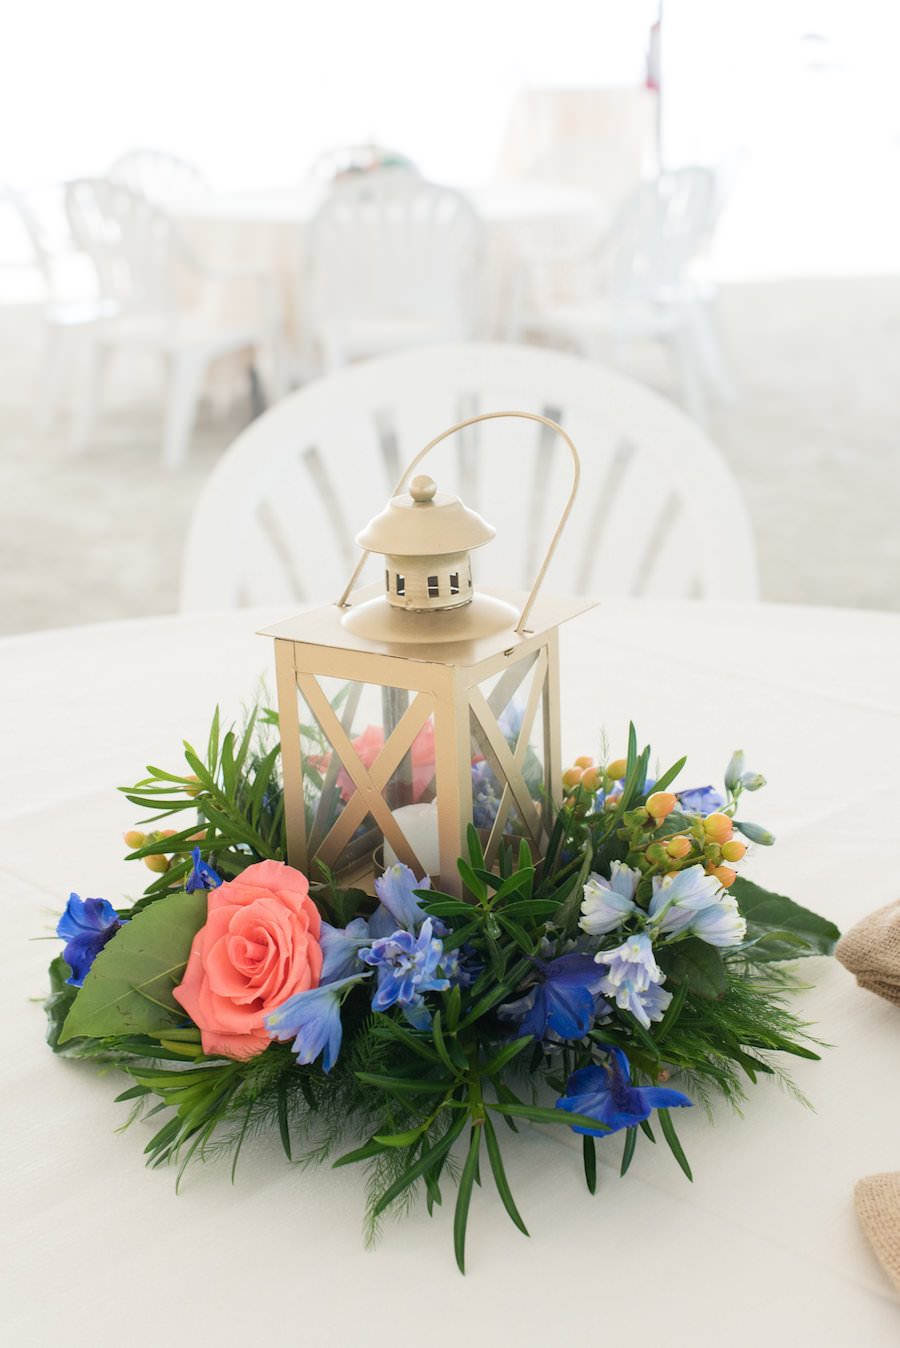 Beach Wedding Reception Table Decor with Gold Lanterns with Lush Greenery and Pink and Blue Flowers   Clearwater Wedding Photographer Caroline and Evan Photography